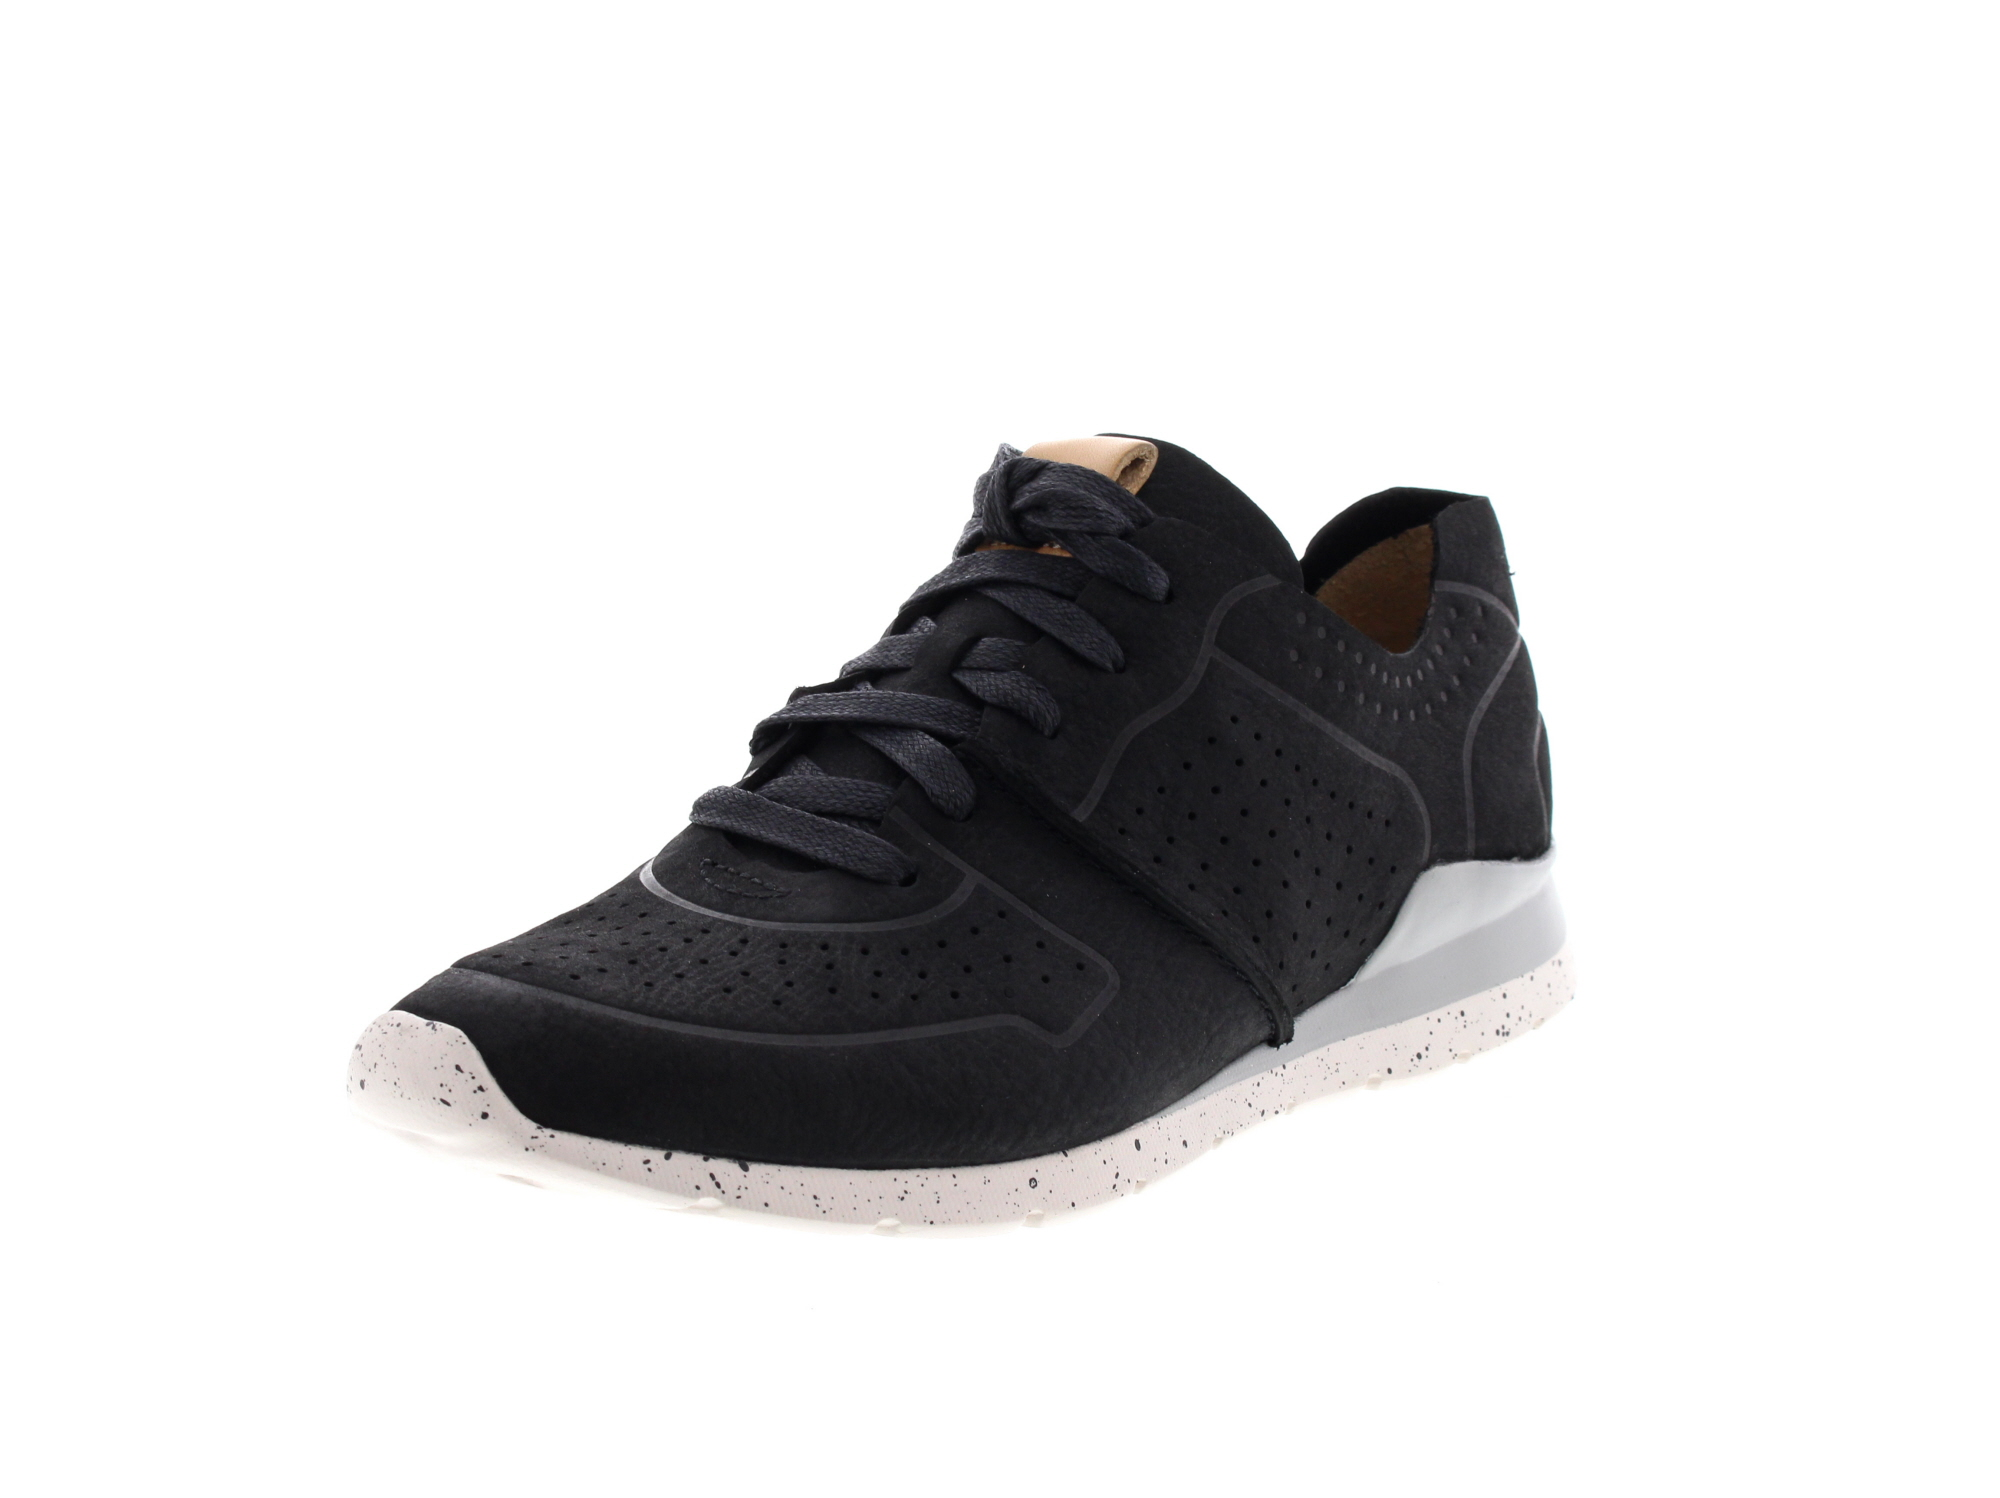 UGG Damenschuhe - Sneakers TYE 1016674 - black-0